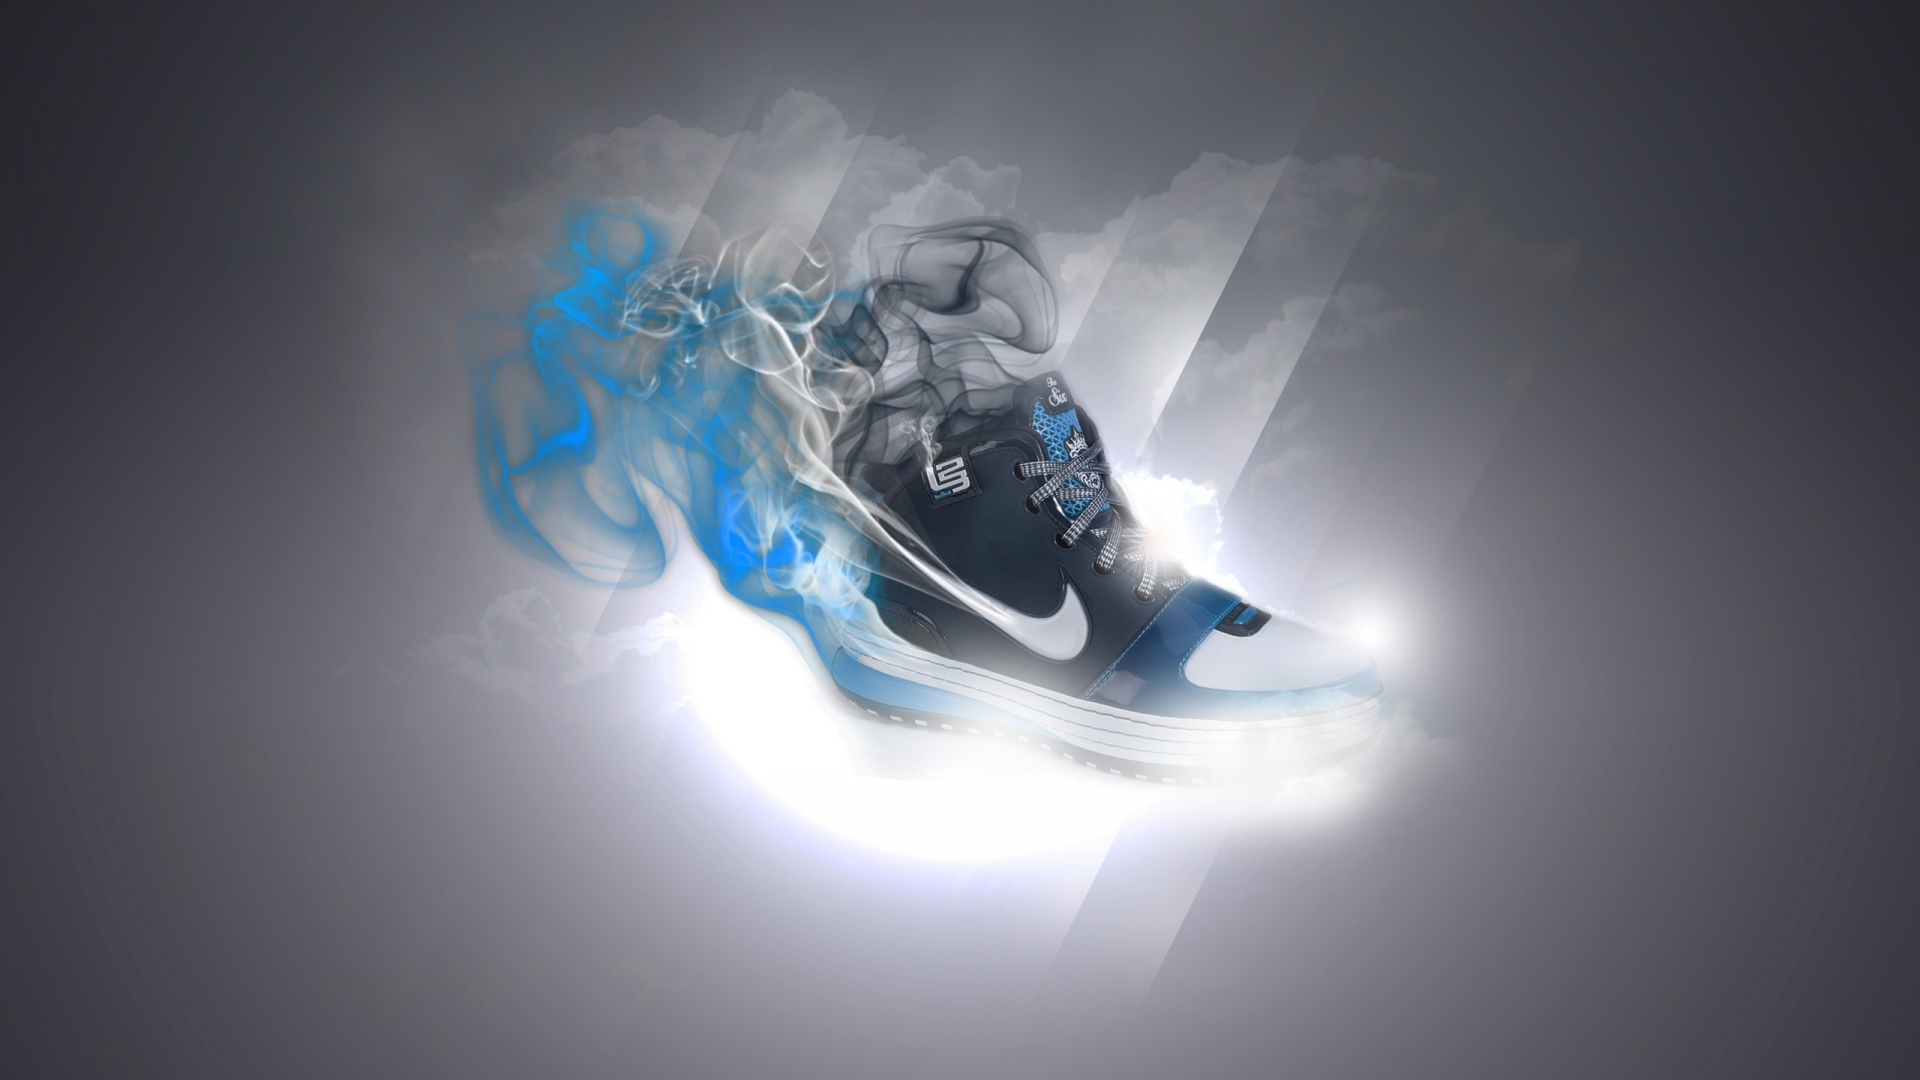 Download Wallpaper Mac Nike - nike_sneakers_sports_light_explosion_movement_66150_1920x1080  Collection_365965.jpg